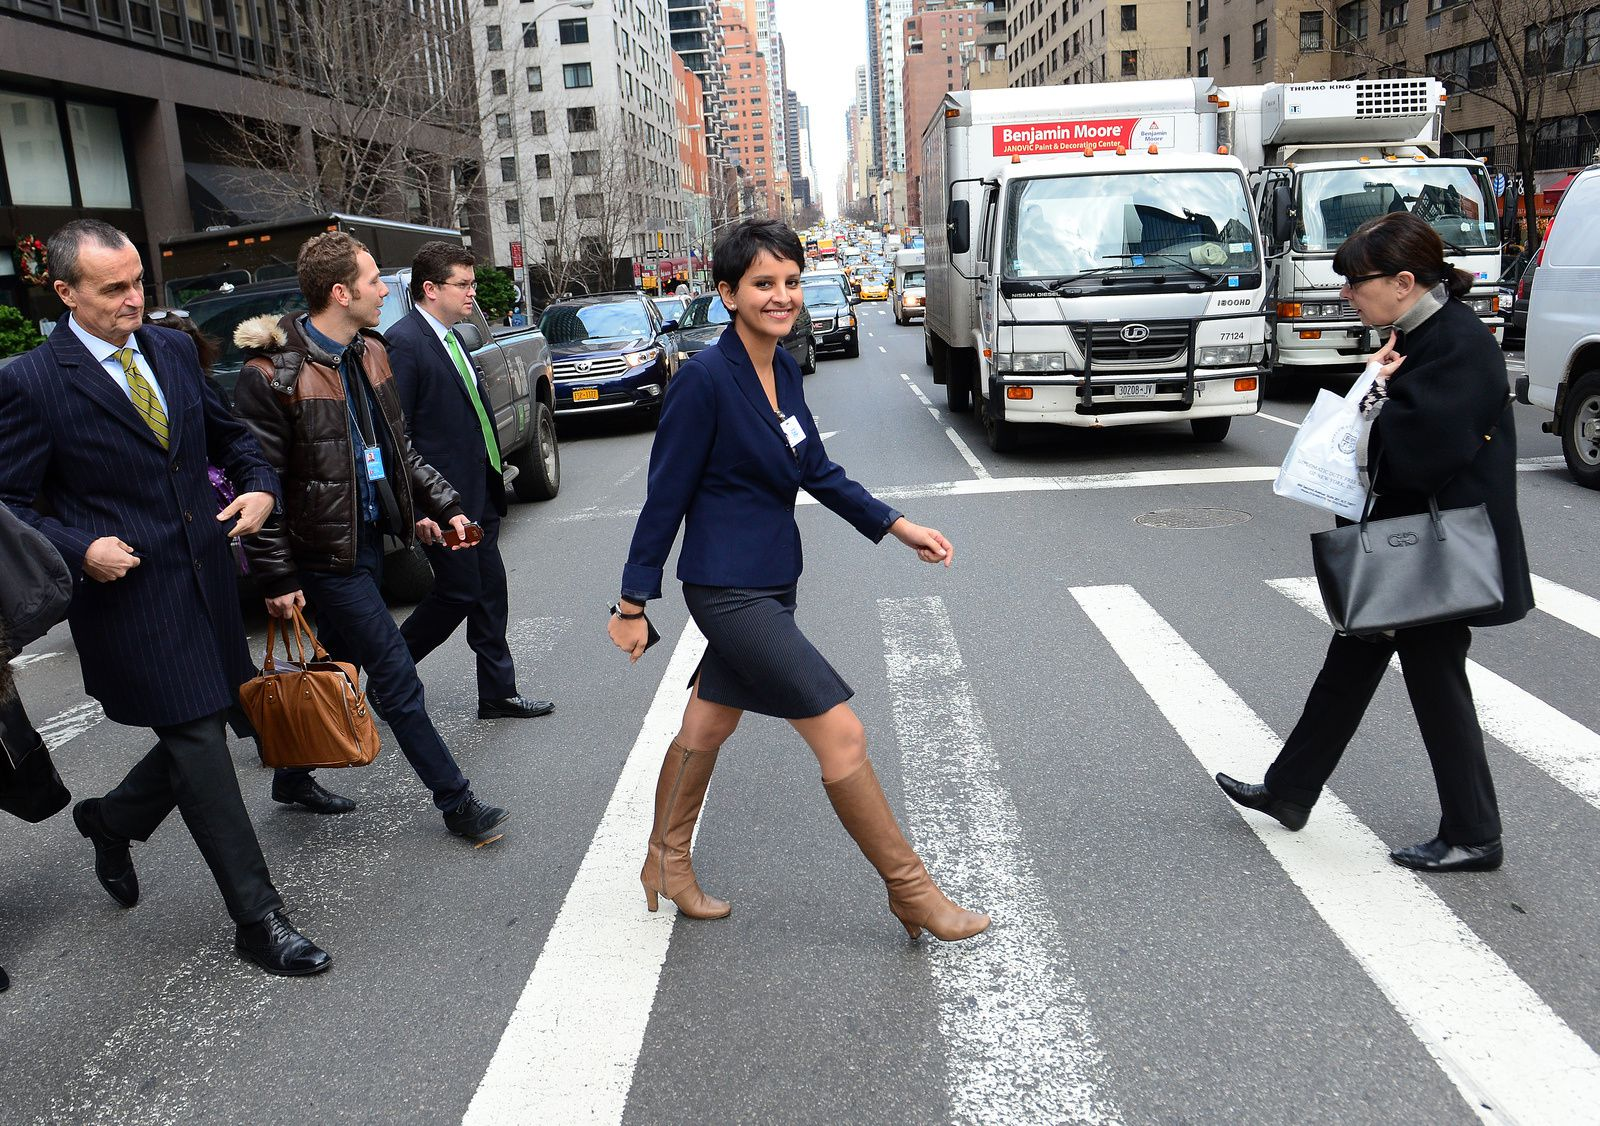 Najat Vallaud-Belkacem NVB  New-York USA France ministre hot belle jambes cuisses bottes cuir leather